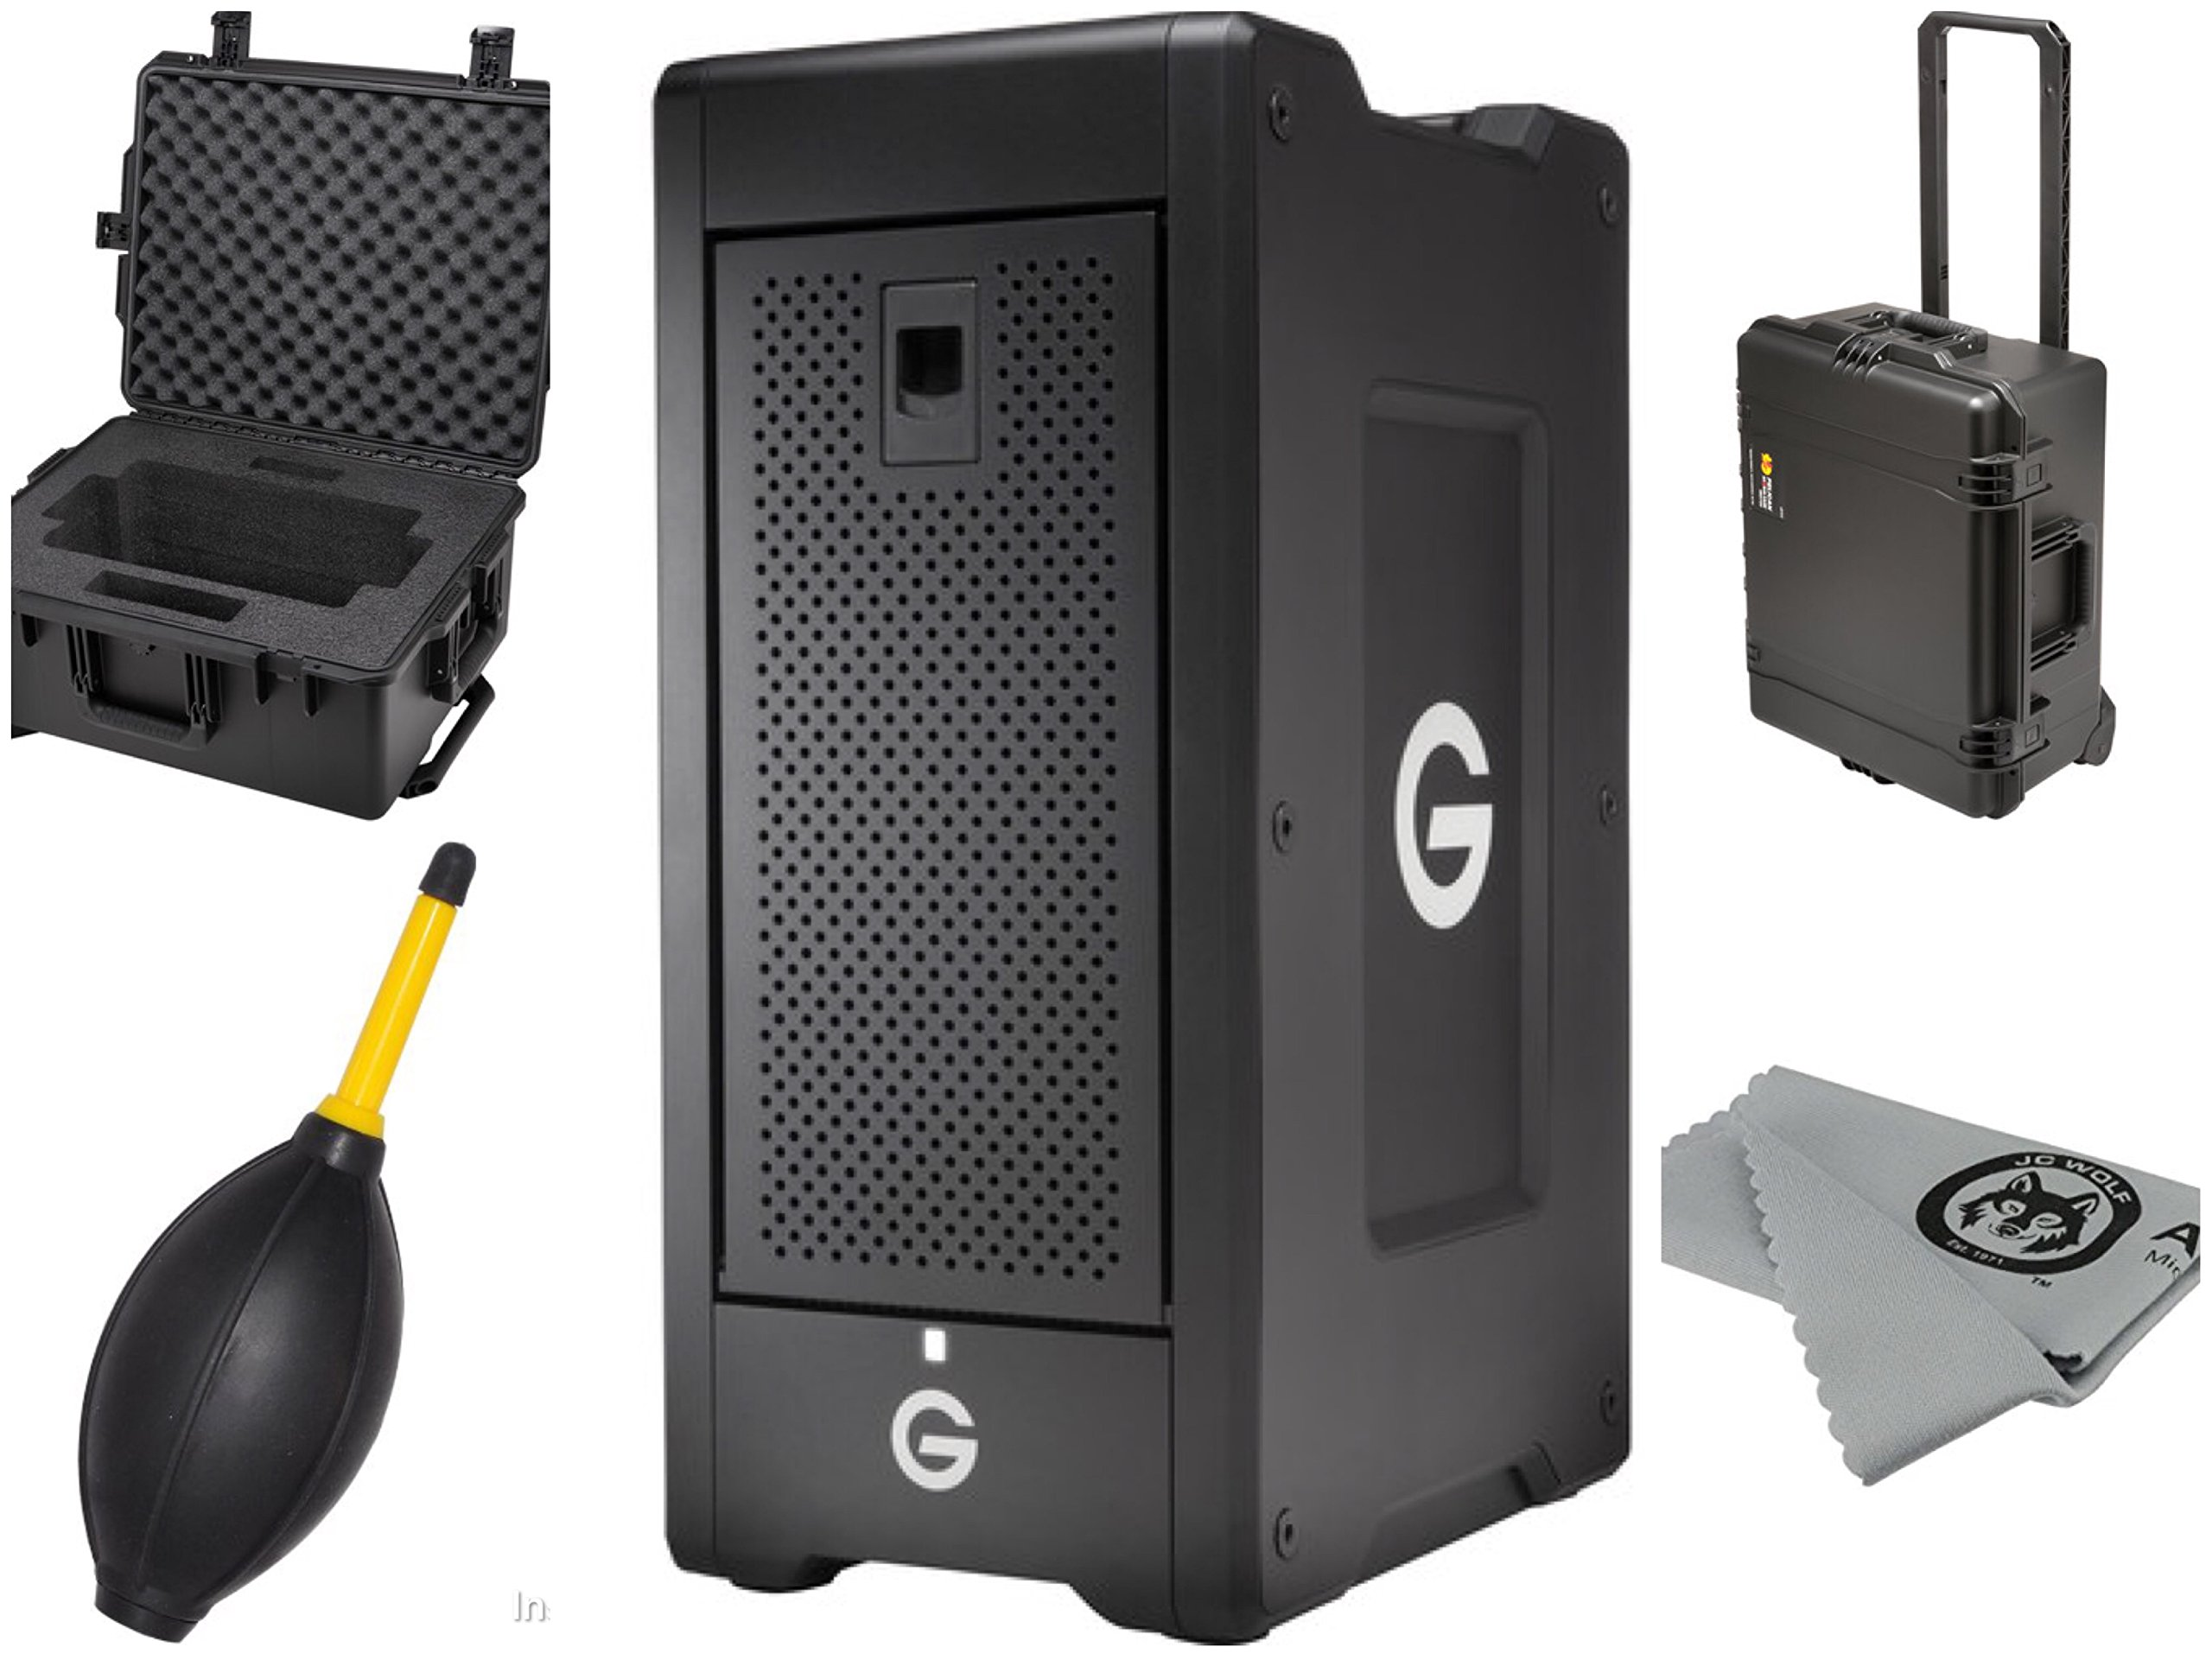 G-Technology G-SPEED Shuttle XL 64TB 8-Bay Thunderbolt 2 RAID Array (8 x 8TB) Bundle Includes G-SPEED Shuttle XL iM2720 Protective Case plus JC Wolf Cloth and Dust Blower 0G04659